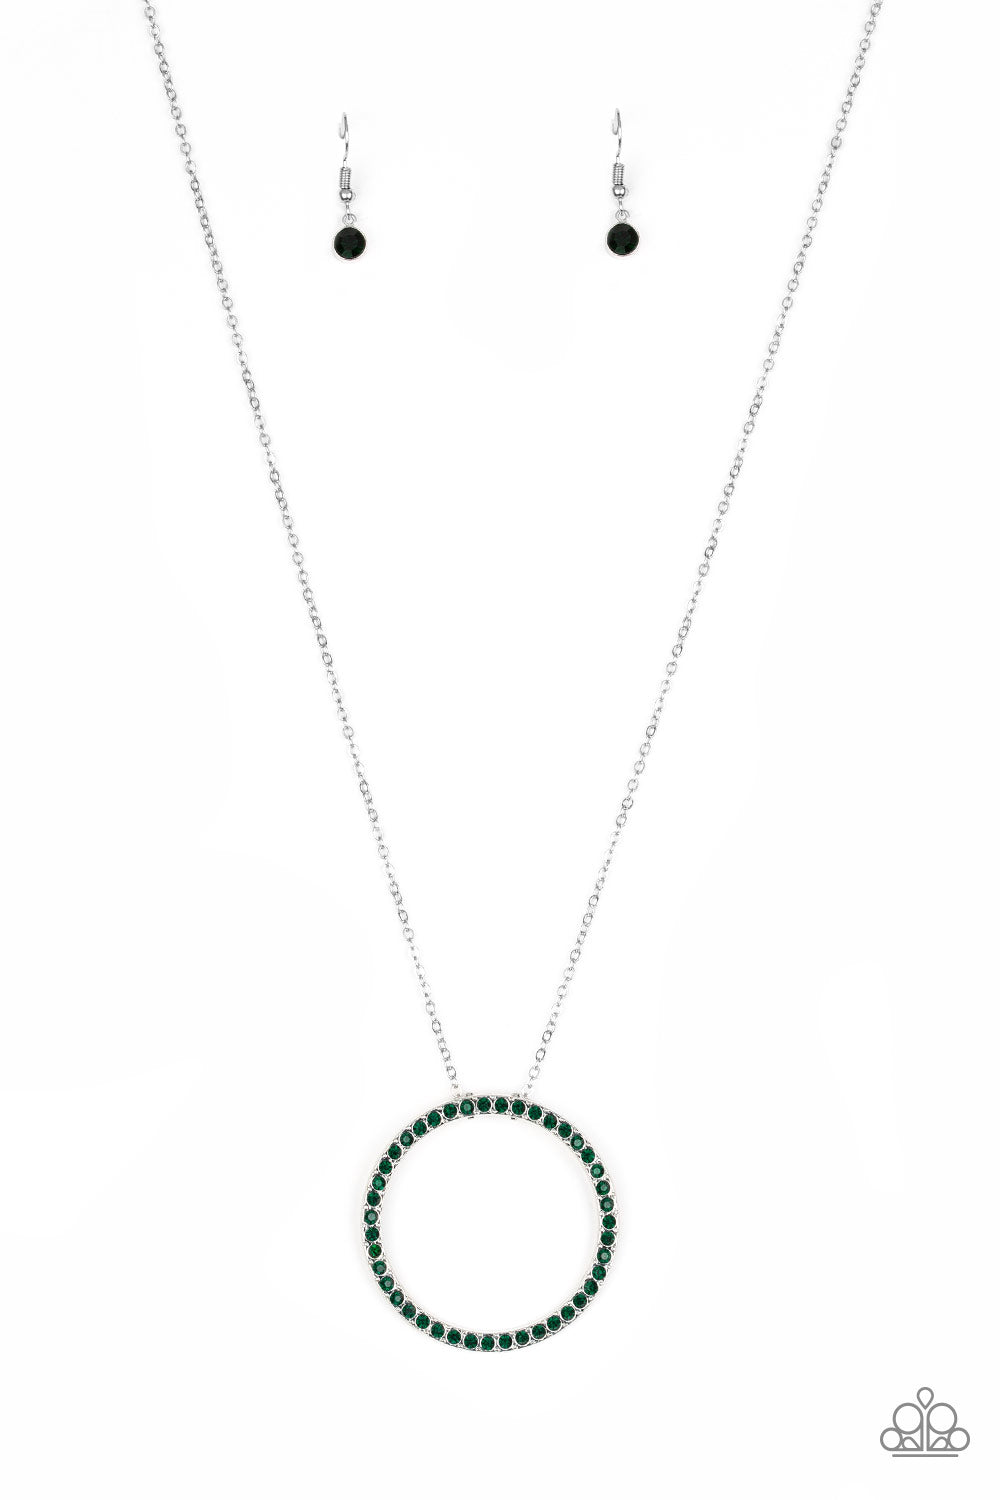 Paparazzi Center Of Attention Green Necklace & Earrings Set